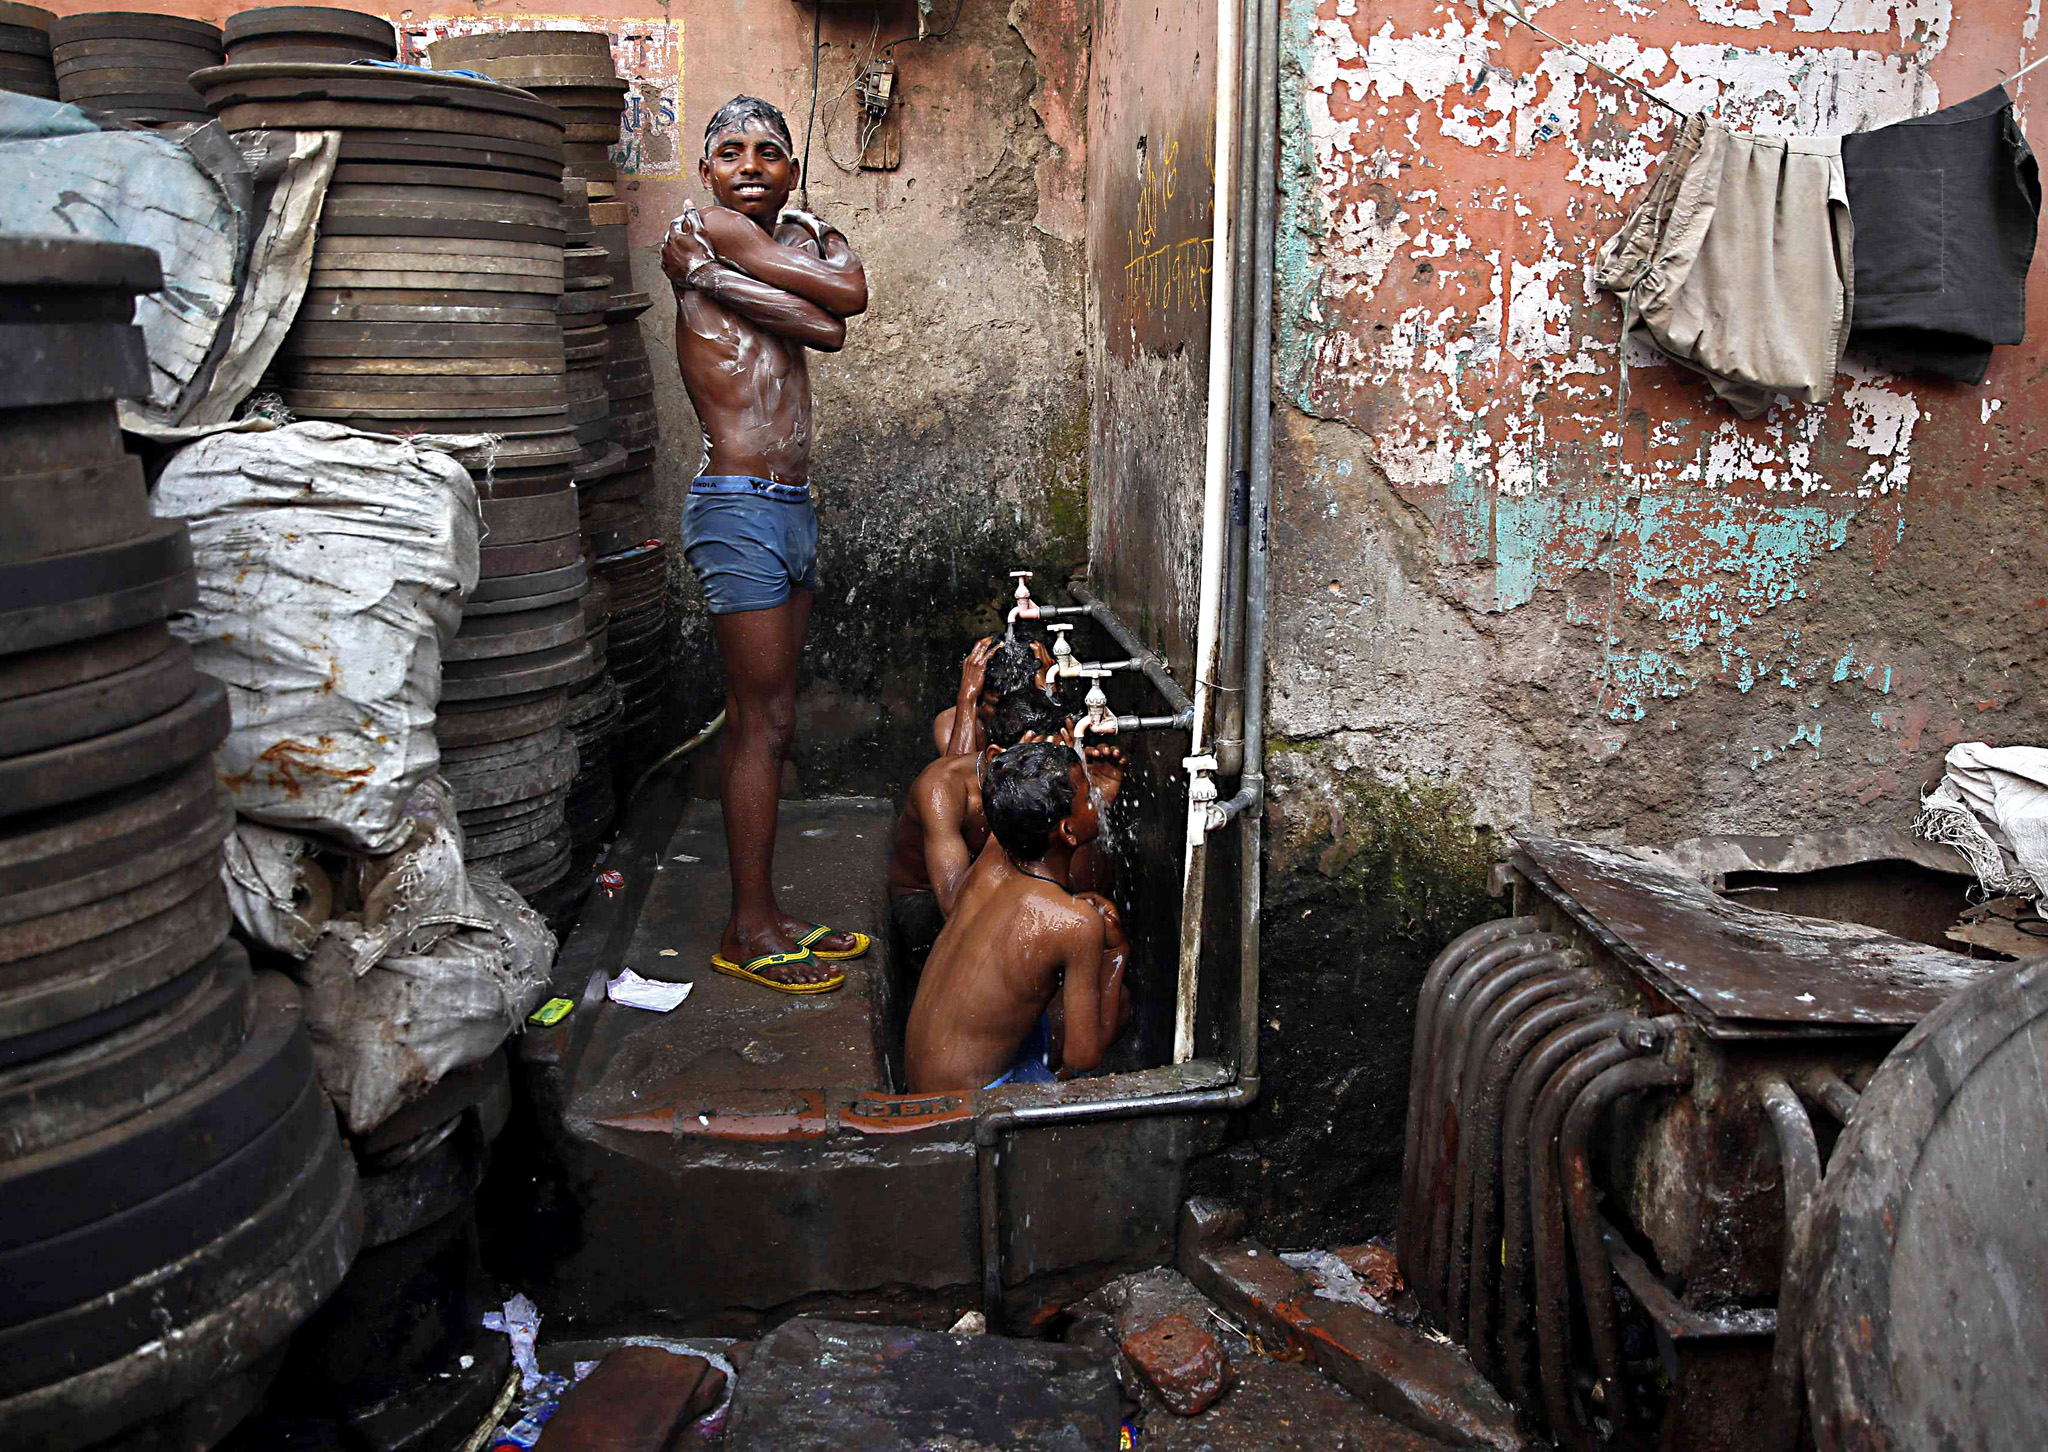 Boys bathe at roadside municipal taps during early morning in the old quarters of Delhi...Boys bathe at roadside municipal taps during early morning in the old quarters of Delhi February 17, 2015. REUTERS/Ahmad Masood (INDIA - Tags: SOCIETY)